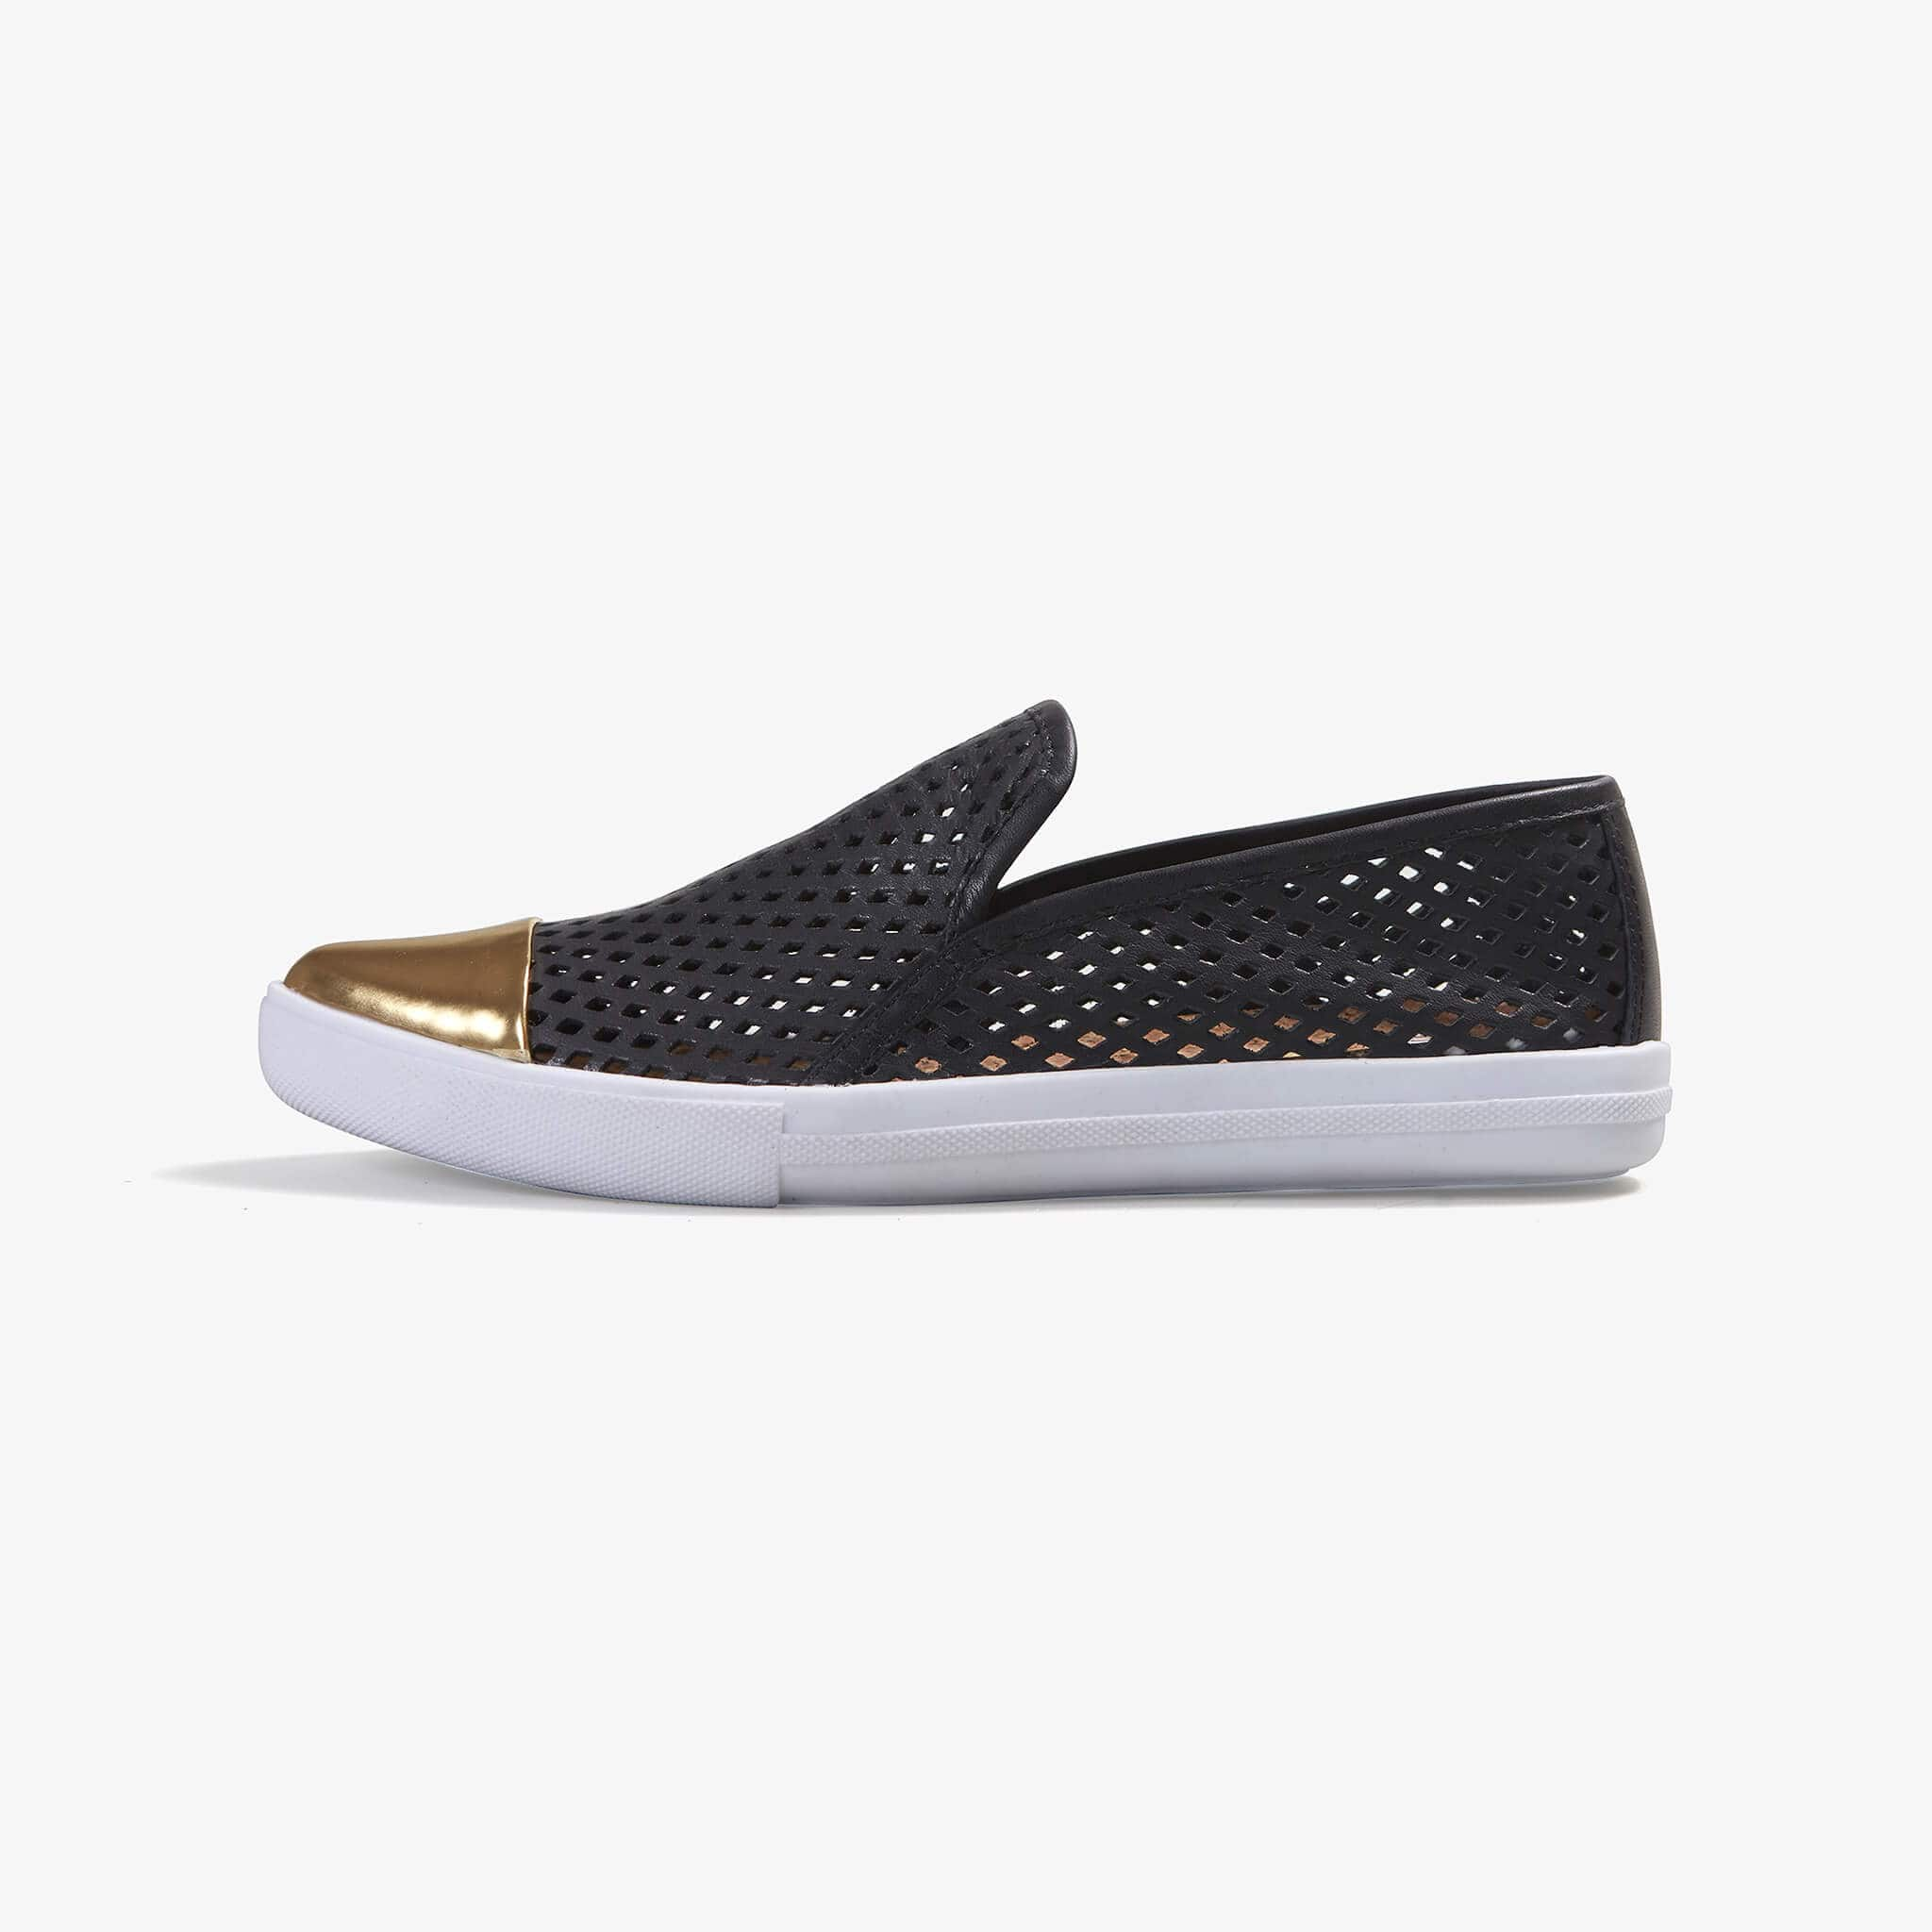 Jibs Slim Jet Black + Gold Slip On Sneaker Flat Shoe Side